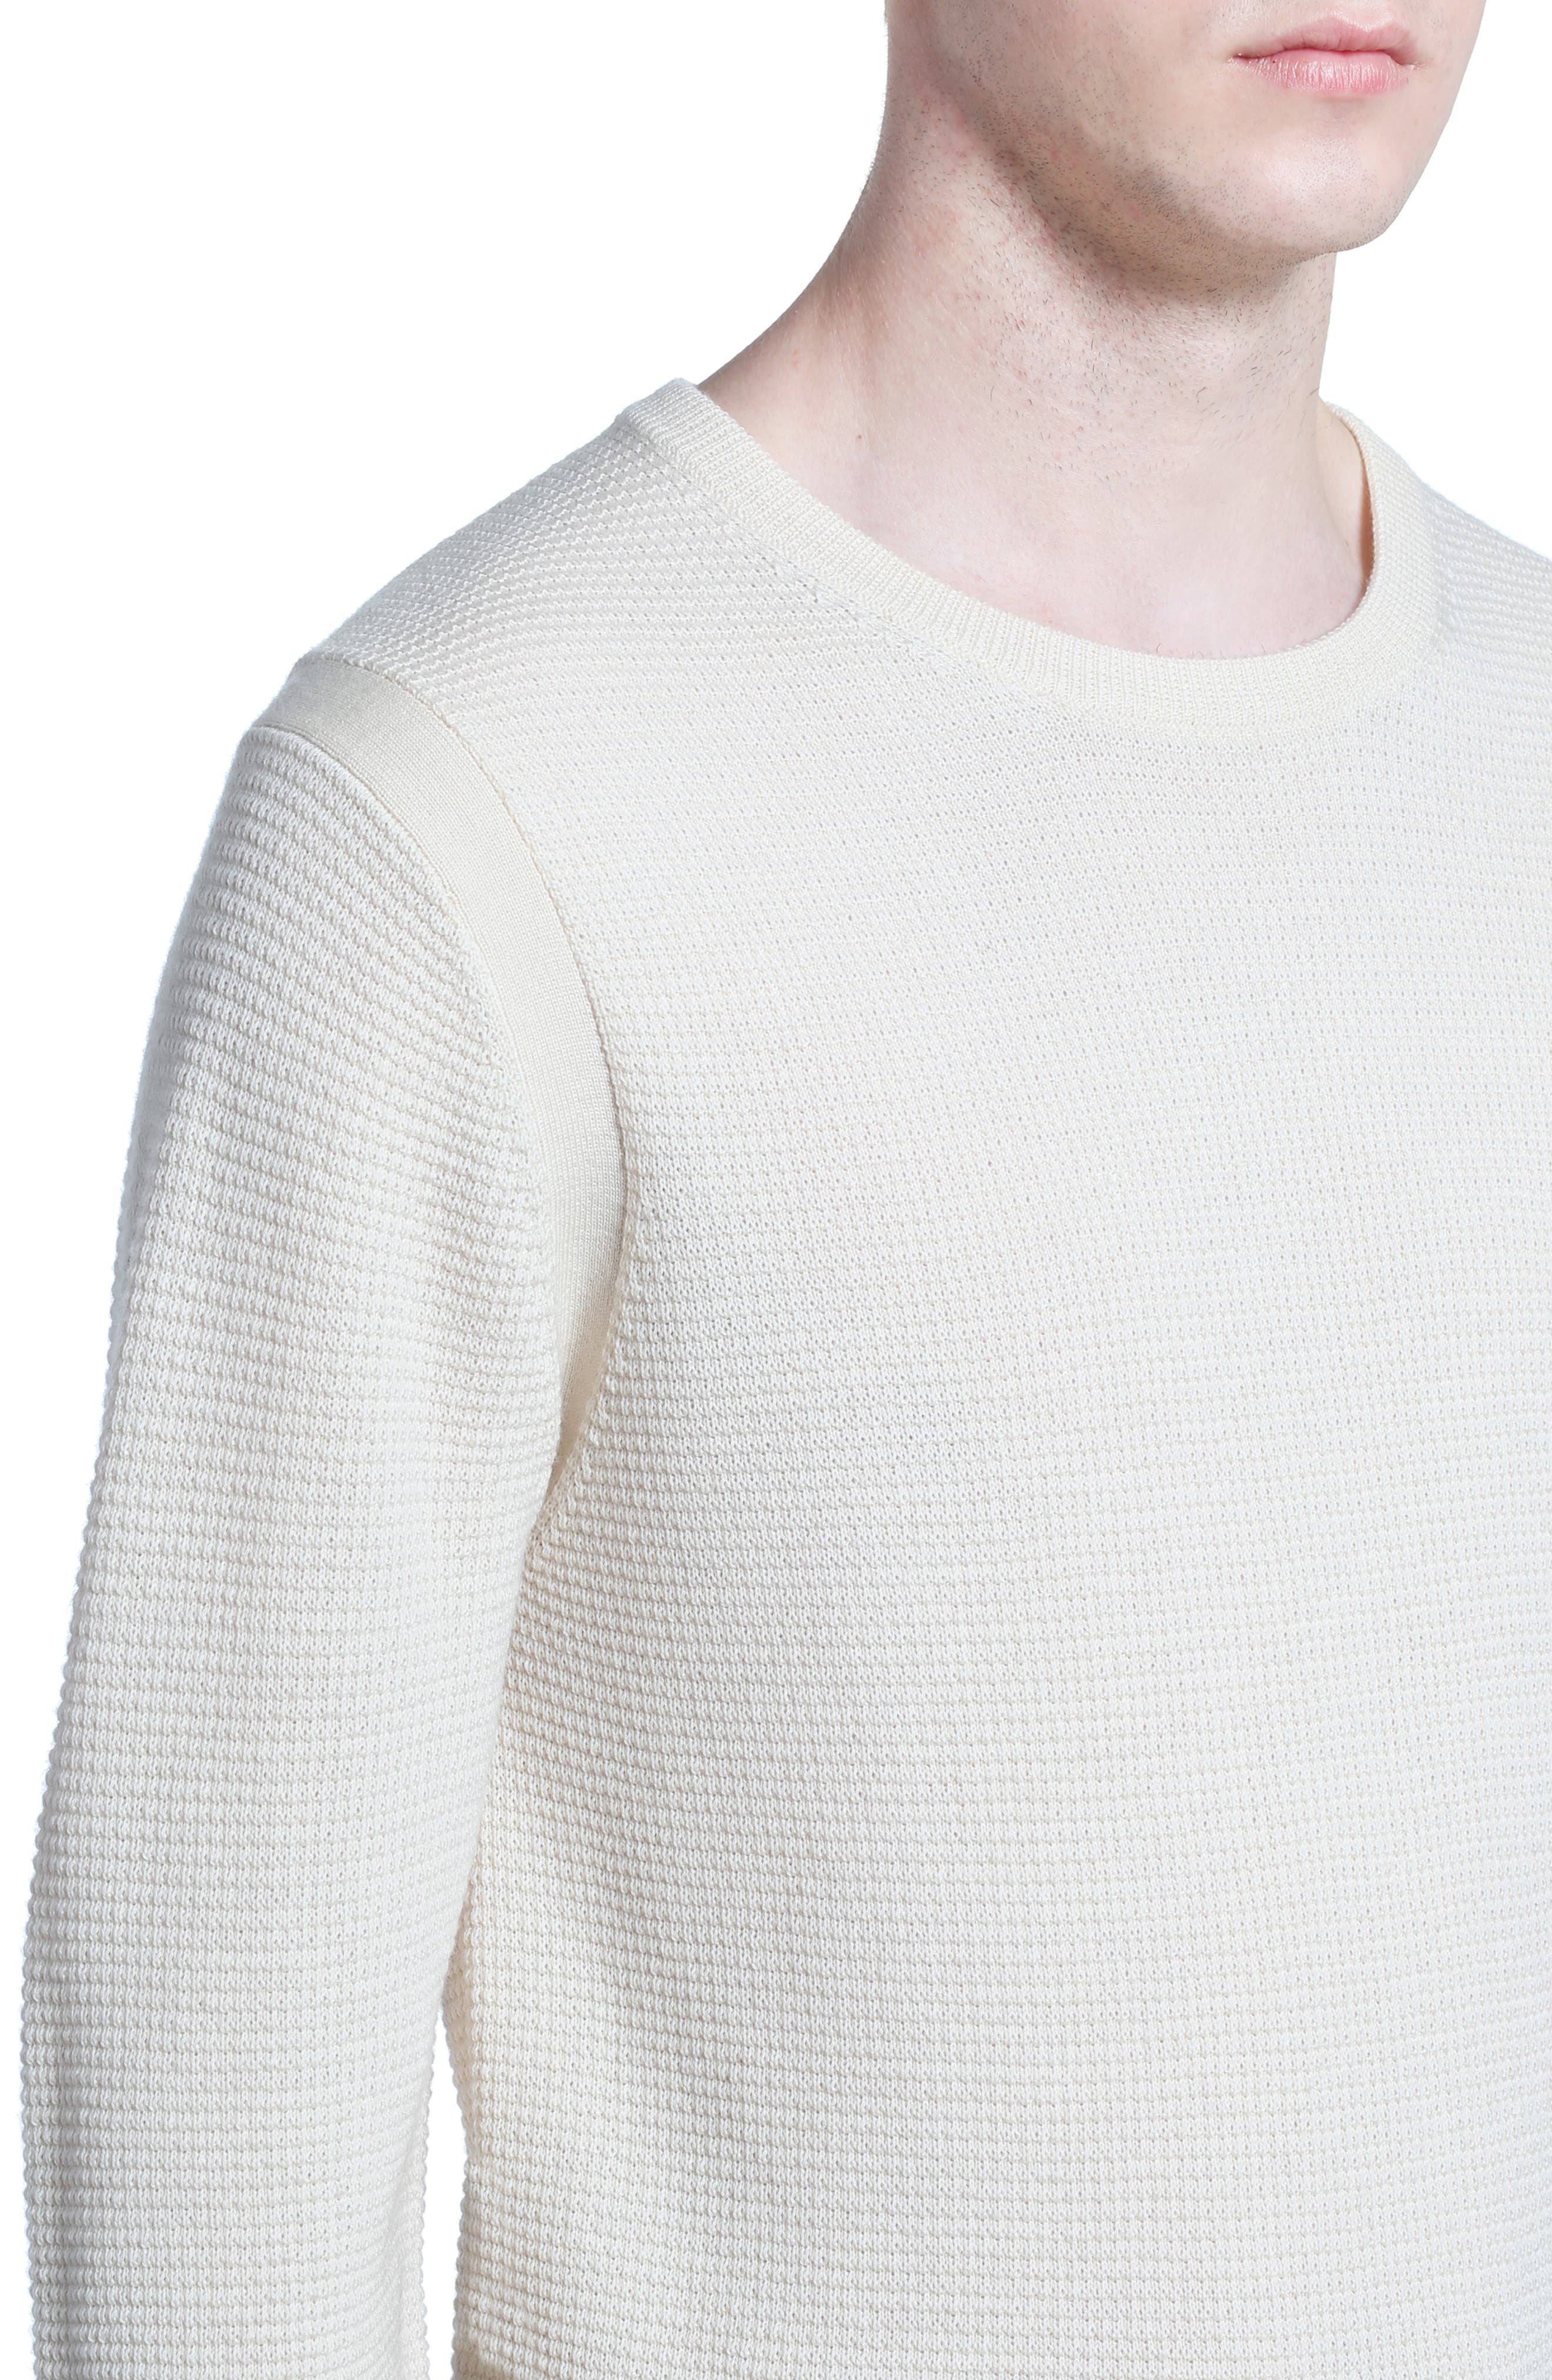 Merino Waffle Knit Wool Sweater,                             Alternate thumbnail 4, color,